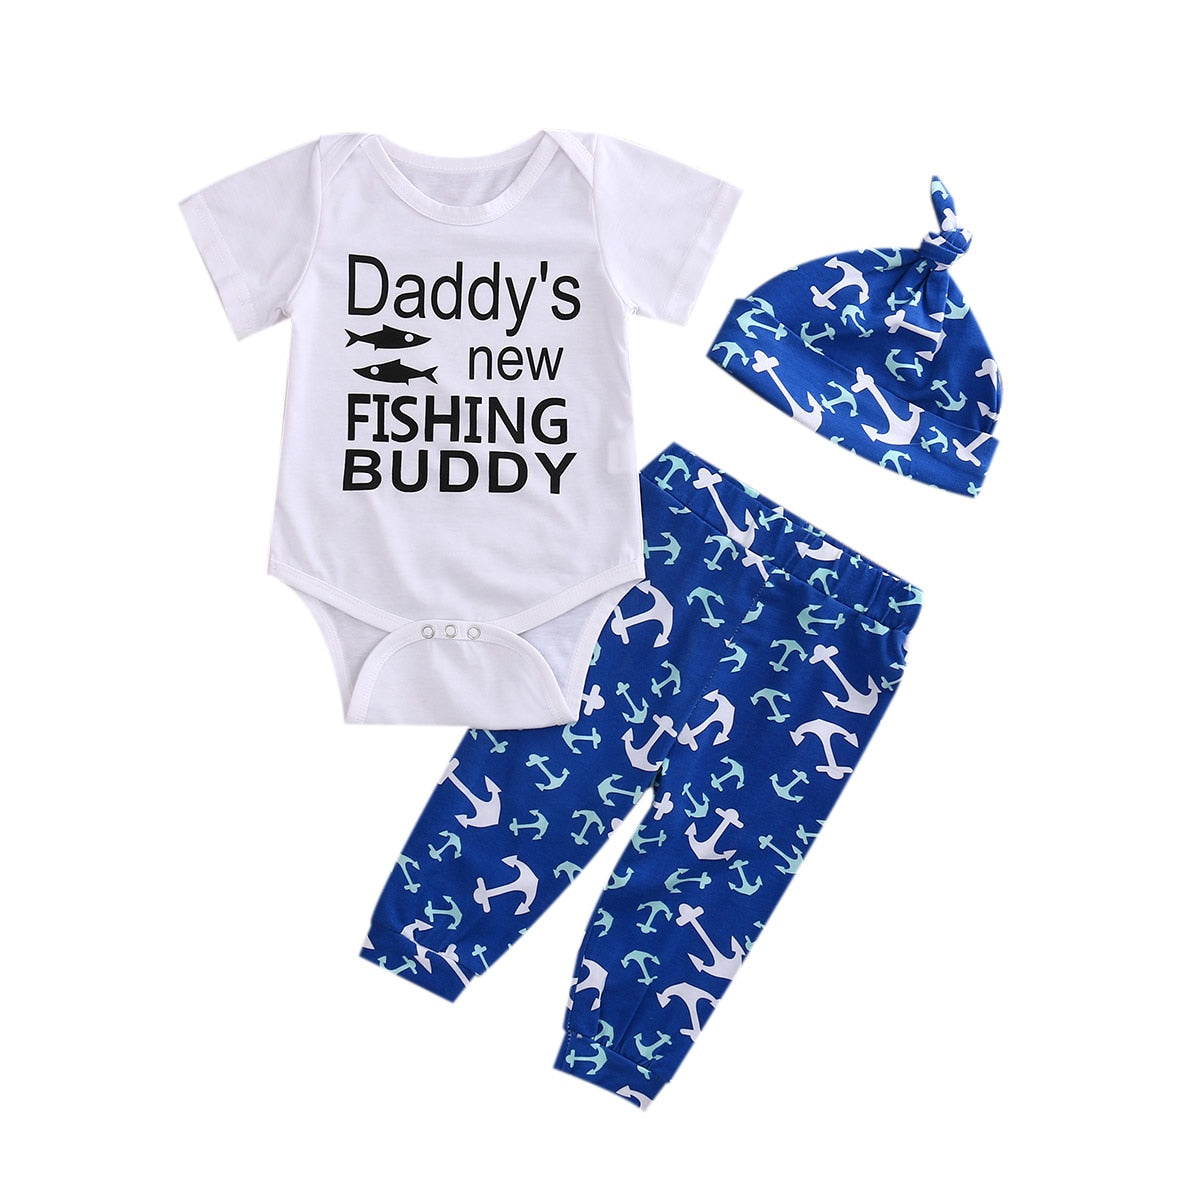 3Pcs Cute Infant Baby Girl Boy daddy new fishing buddy Tops T-shirt+Pants Leggings Hat 3pcs Outfits Set-eosegal